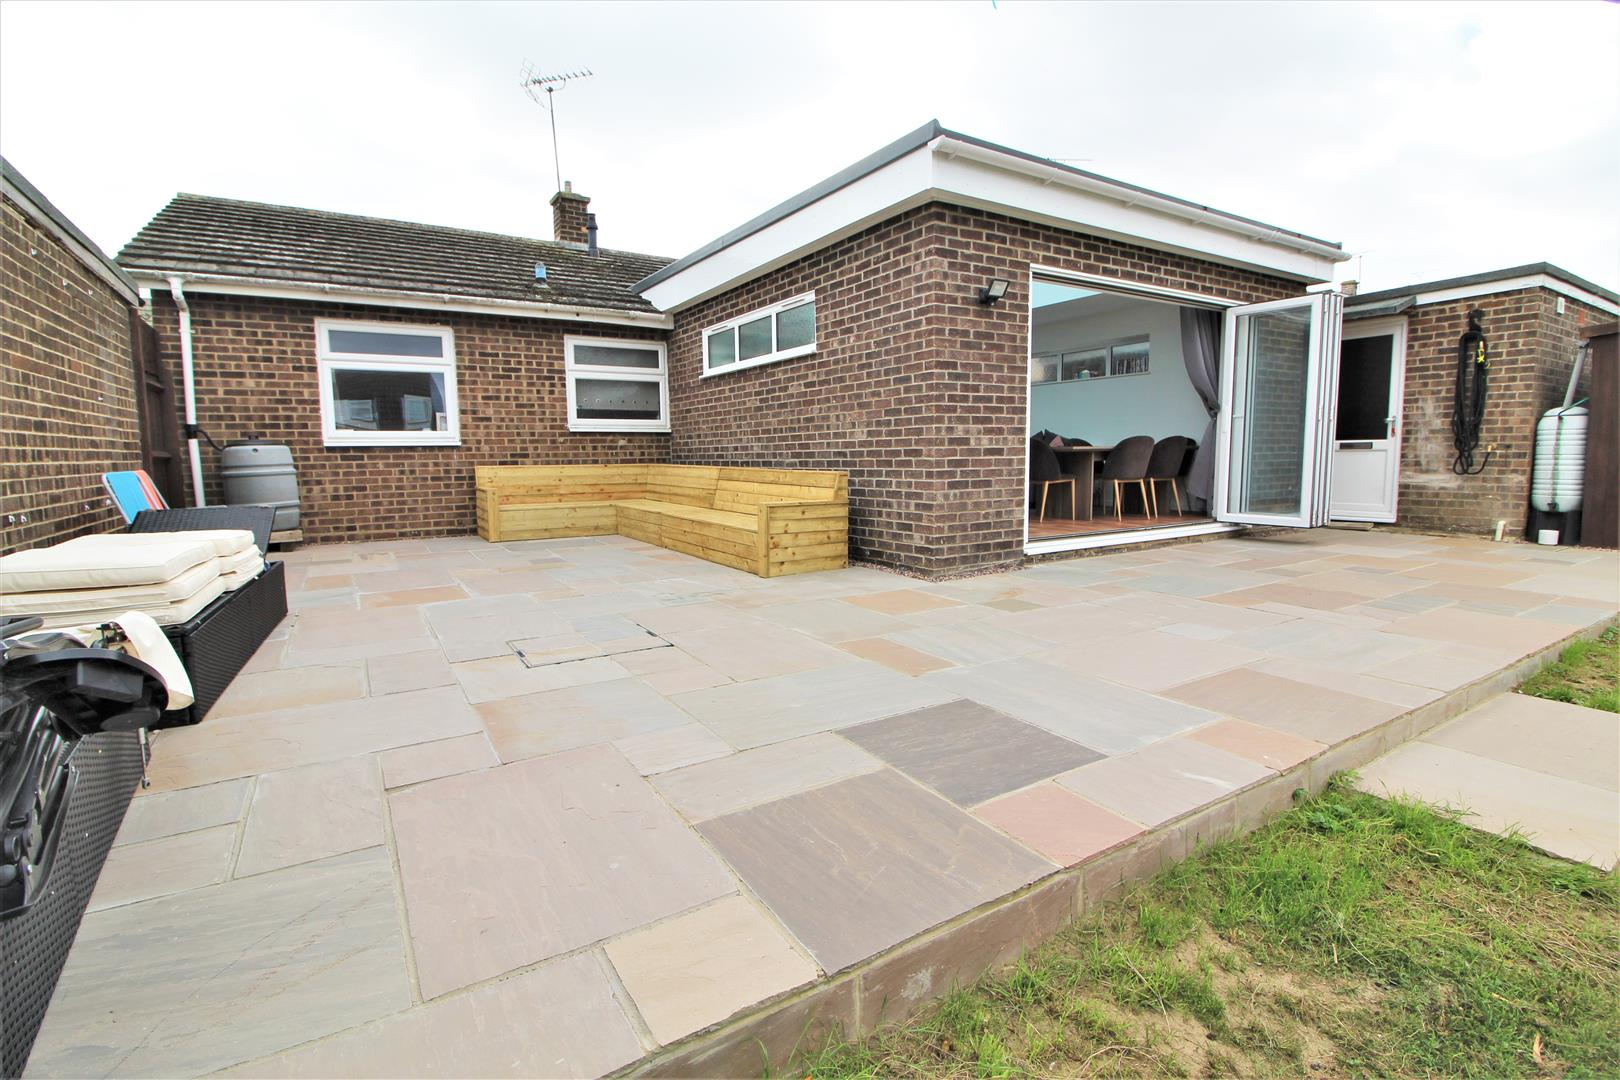 Rochford Way, Walton On The Naze, Essex, CO14 8SP